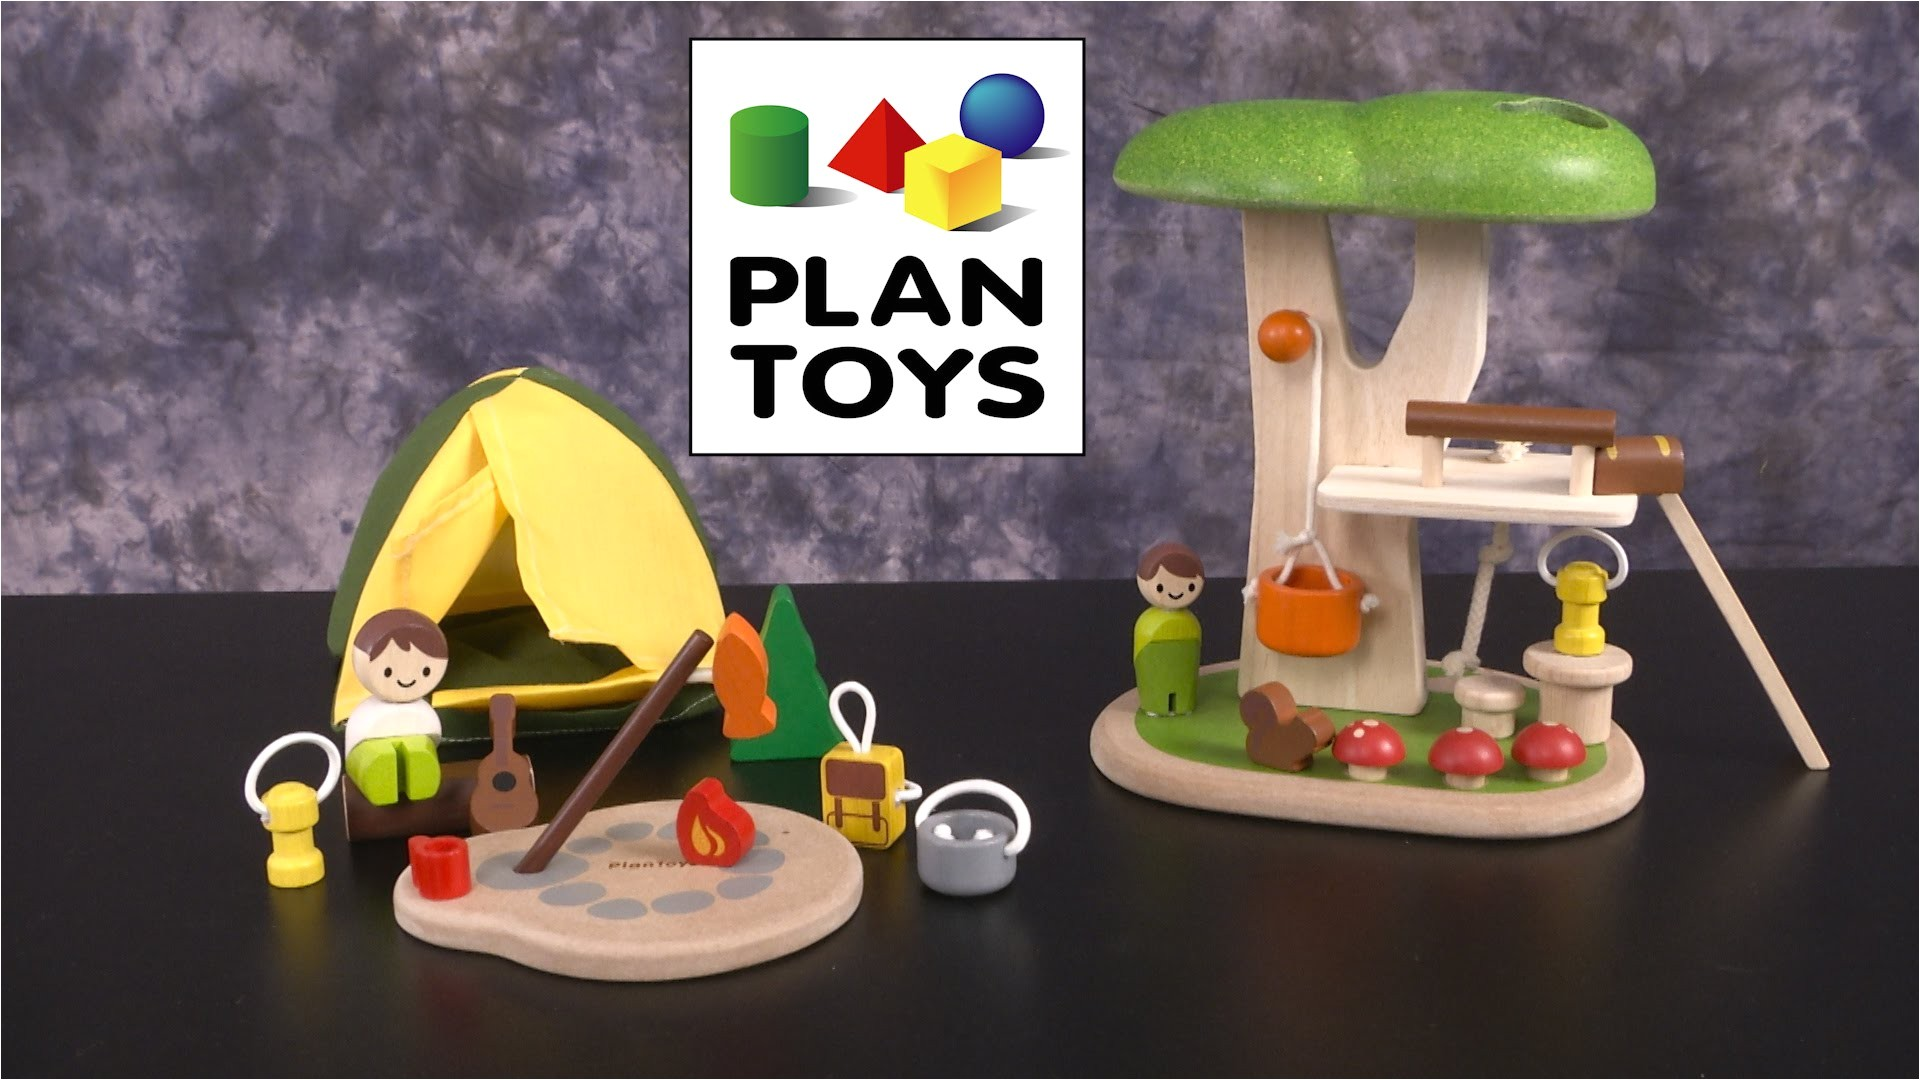 Plan toys Tree House Camping Set Tree House From Plan toys Youtube